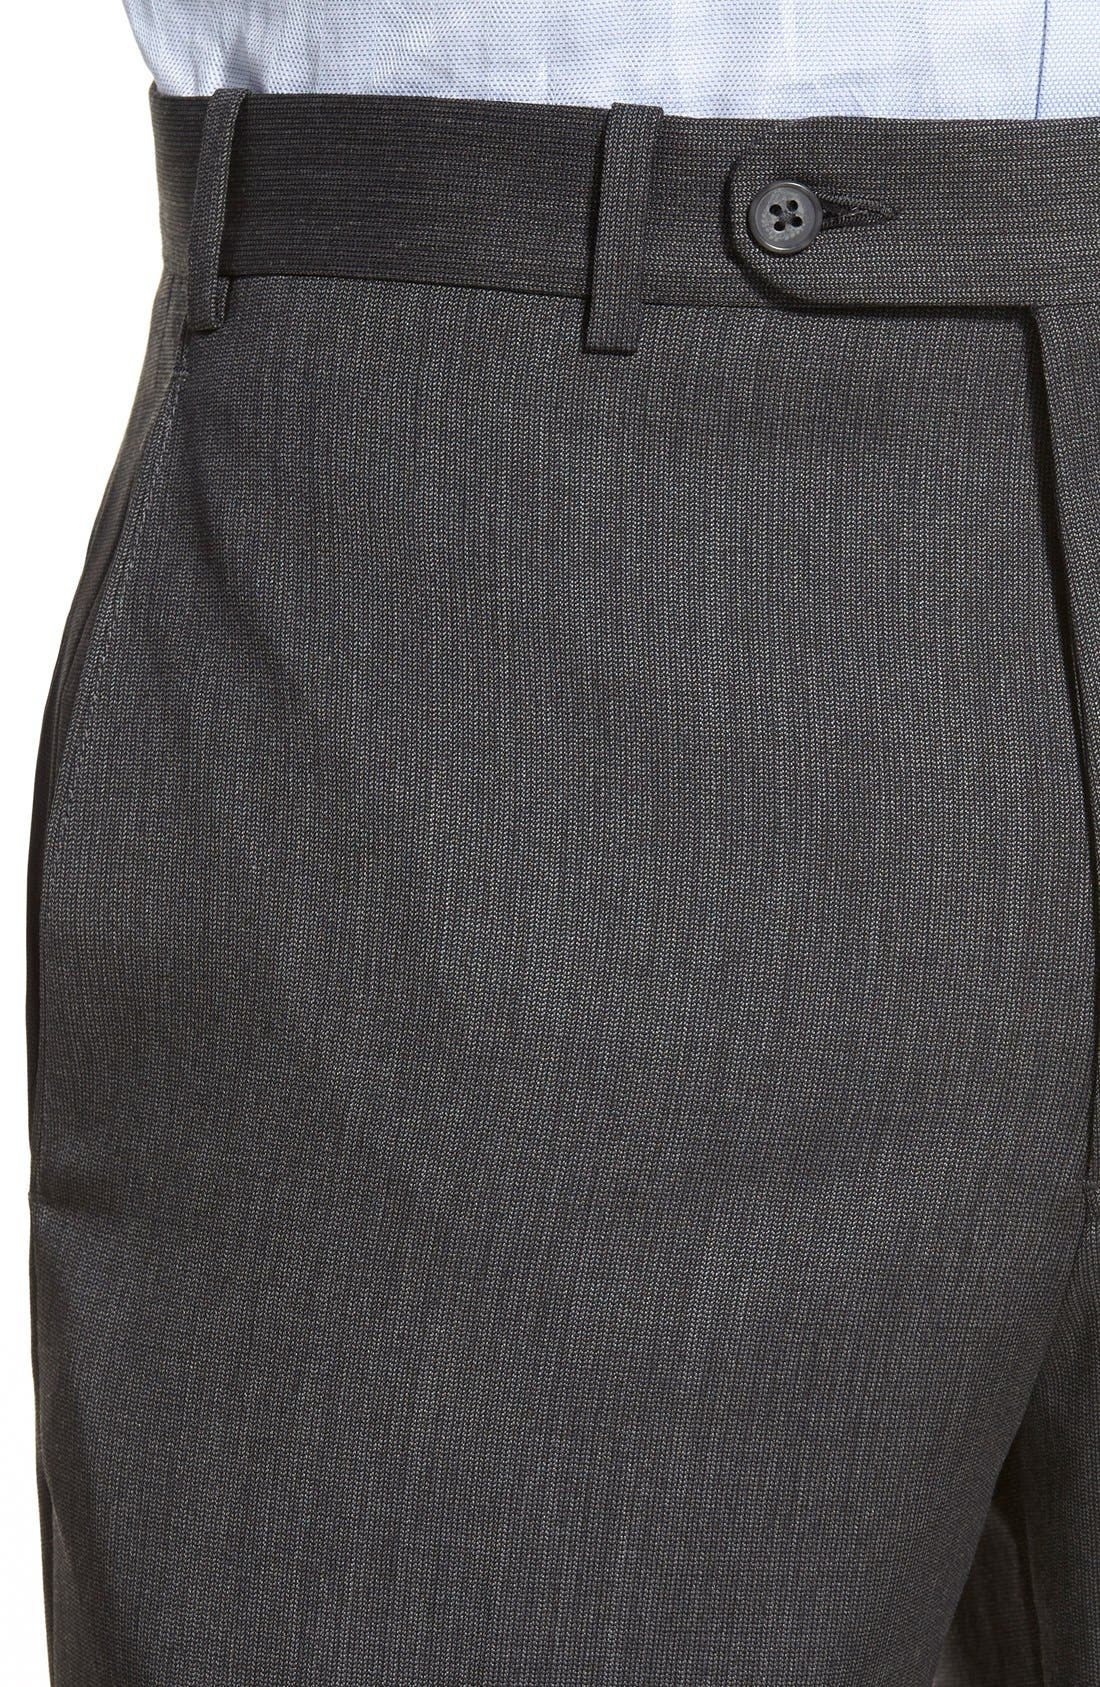 Torino Flat Front Solid Wool Trousers,                             Alternate thumbnail 3, color,                             020